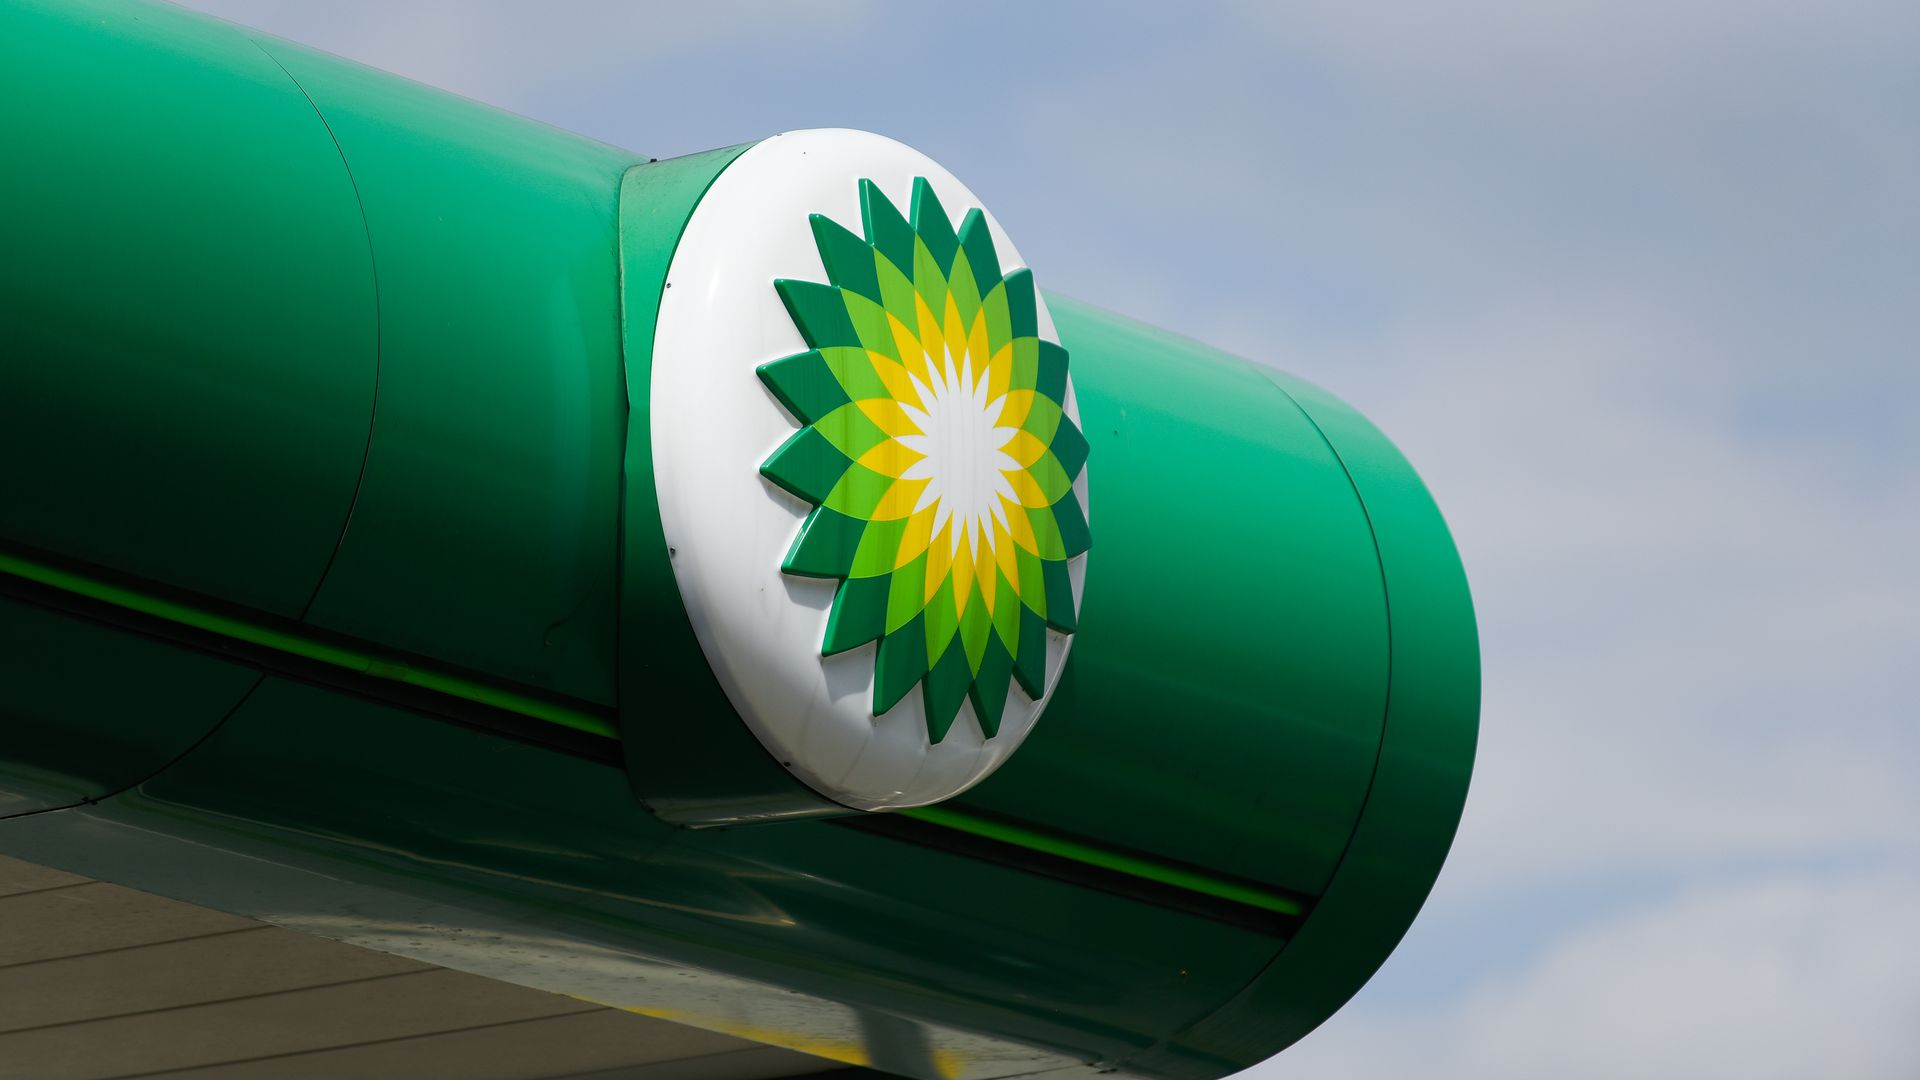 BP's company logo show at a gas station in Poland